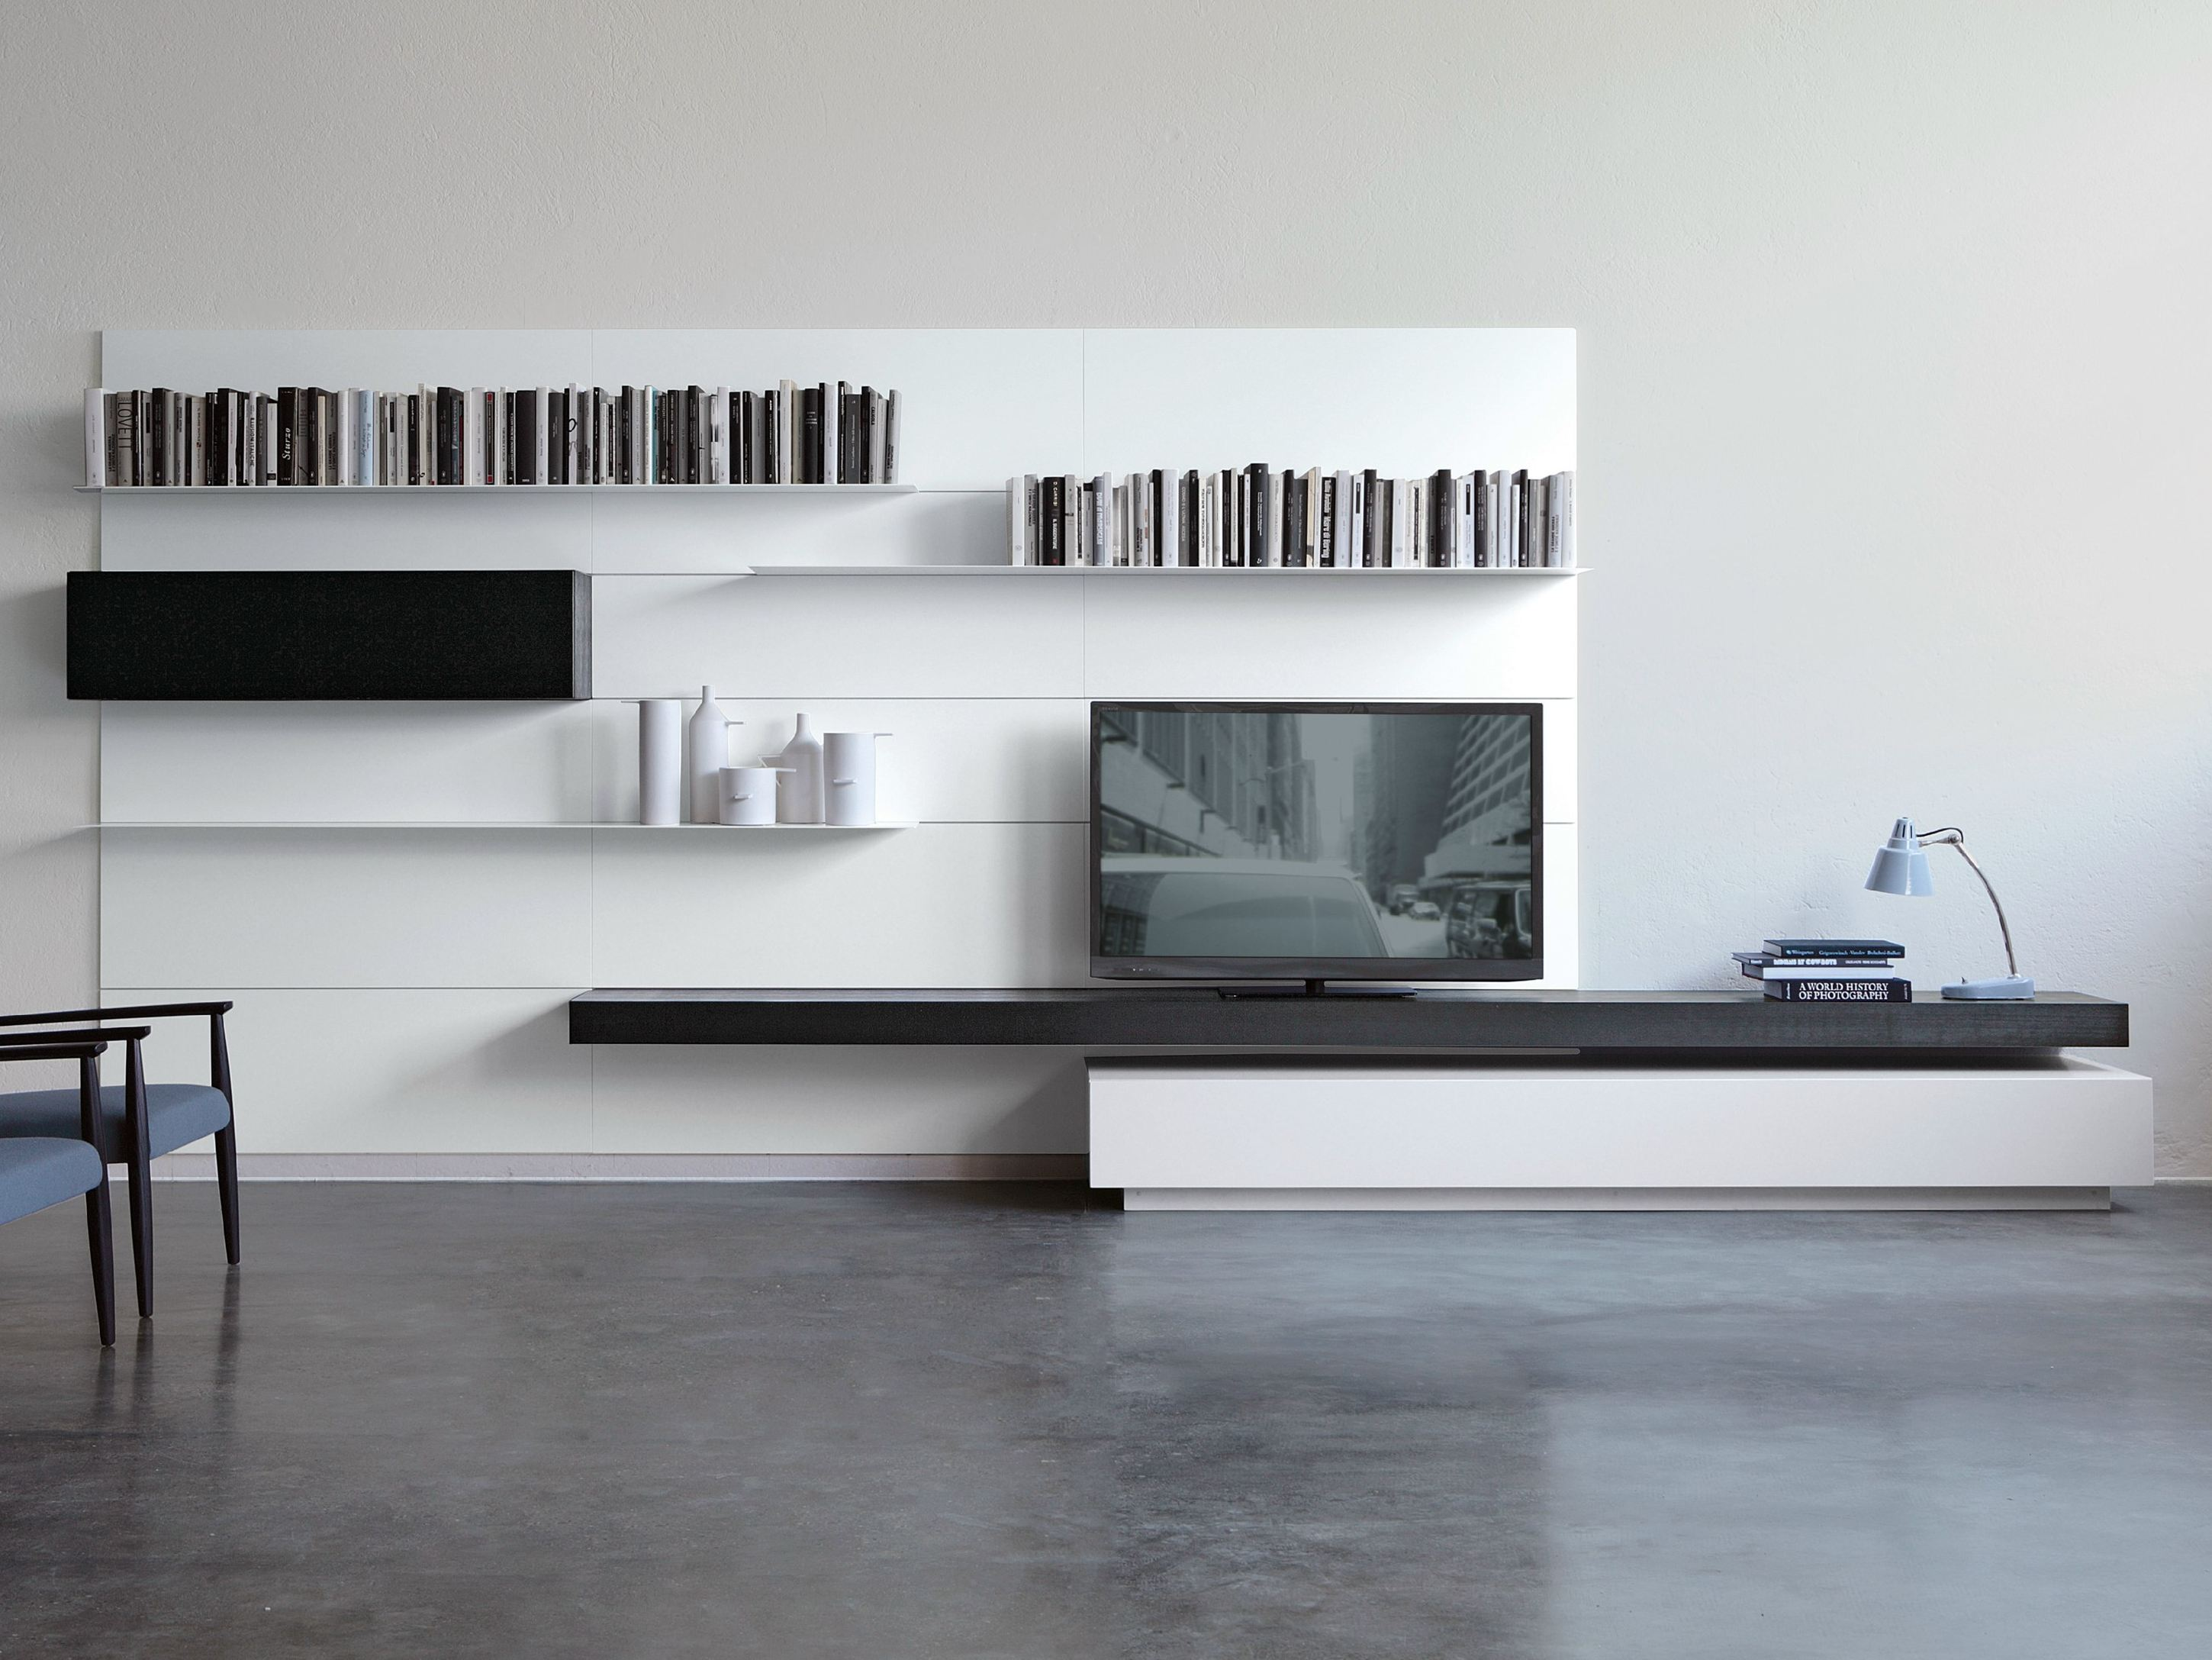 mueble modular de pared montaje pared load it by porro